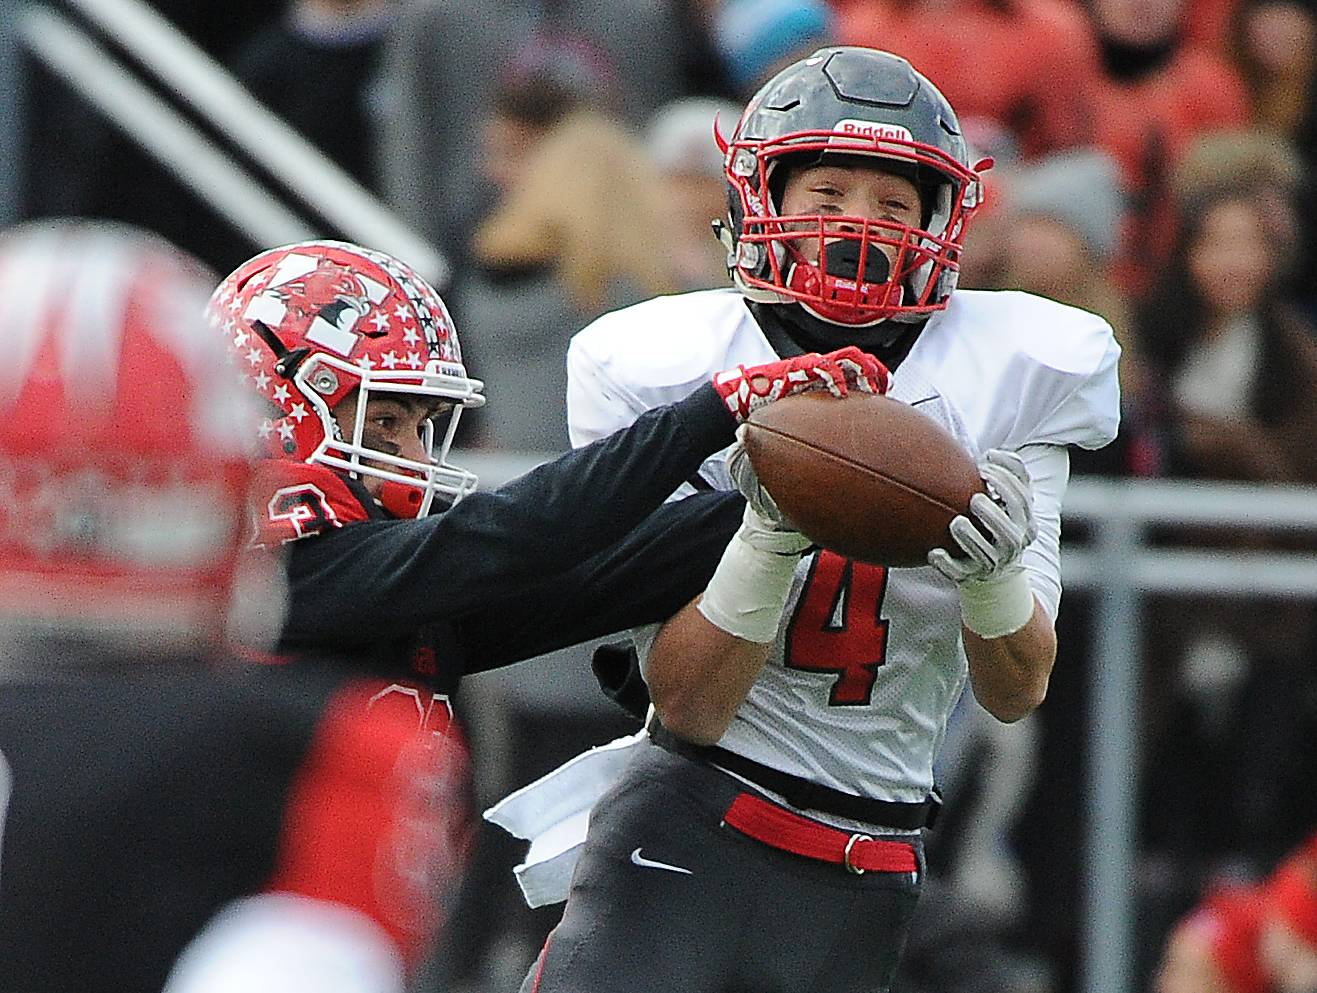 Palatine's Jack Orlando tries to hang on to pass, but Maine South's Matt Holbrook reaches to break it up in Class 8A semifinal play Saturday.